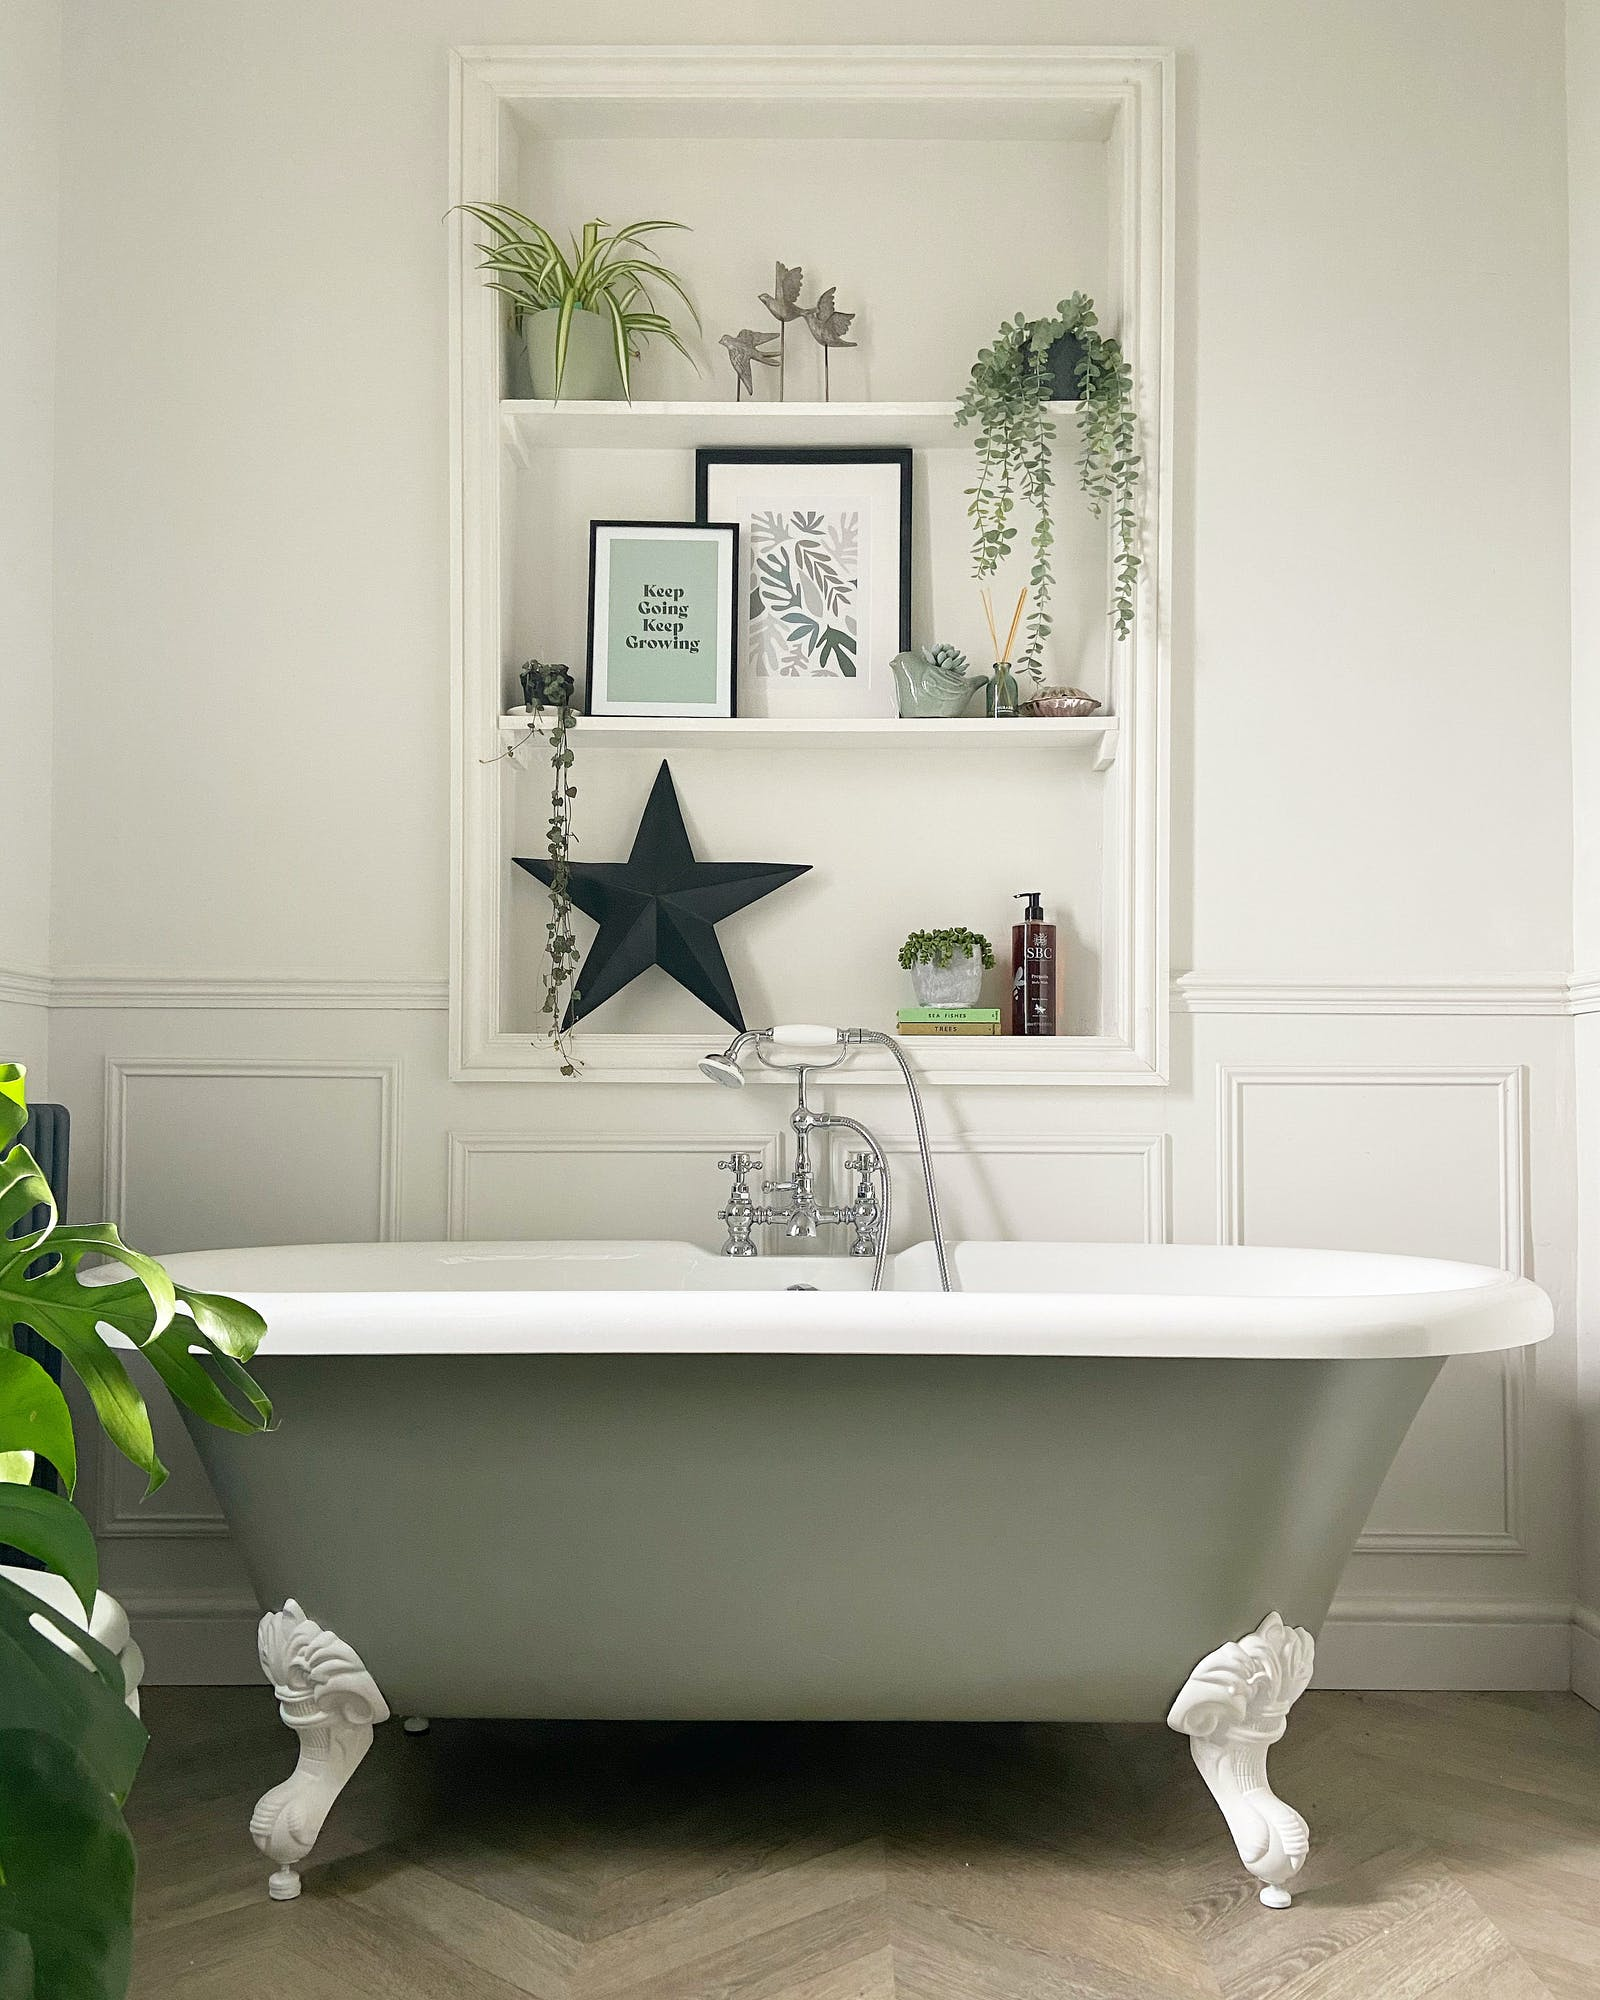 Elegant bathtub in bathroom with walls painted in Lick White 04